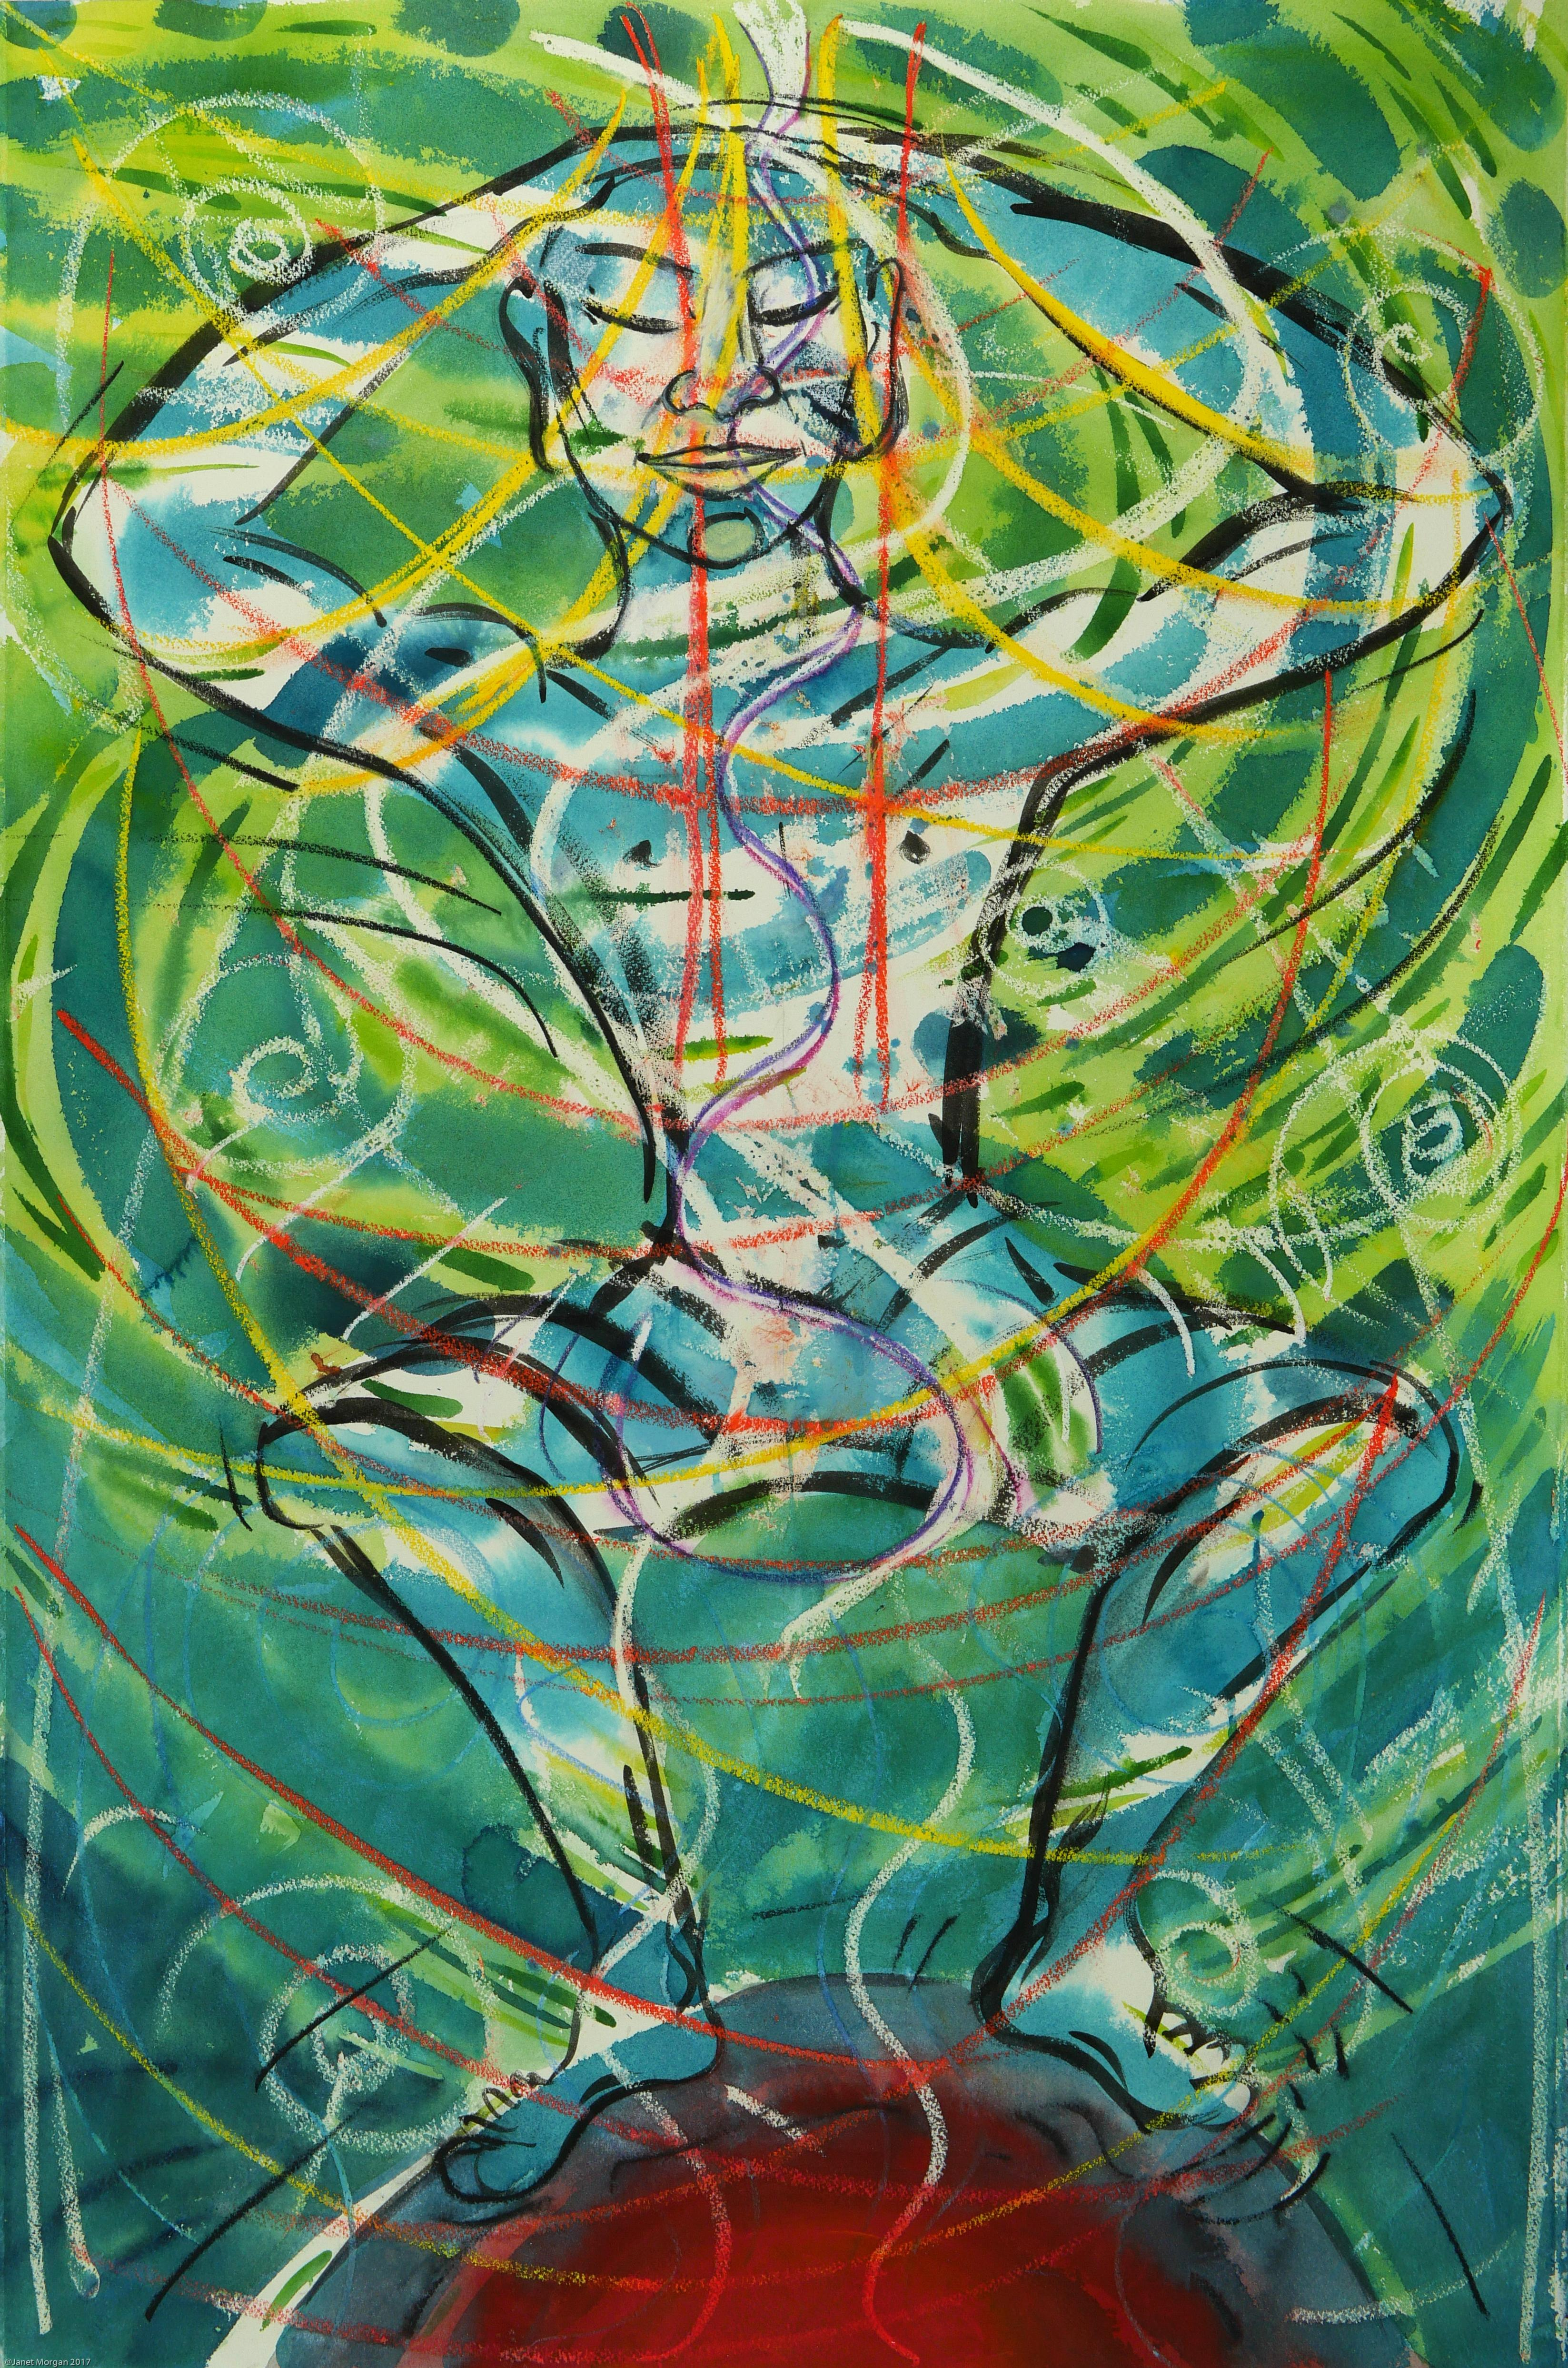 On Top of the World figurative, green colorful spiritual